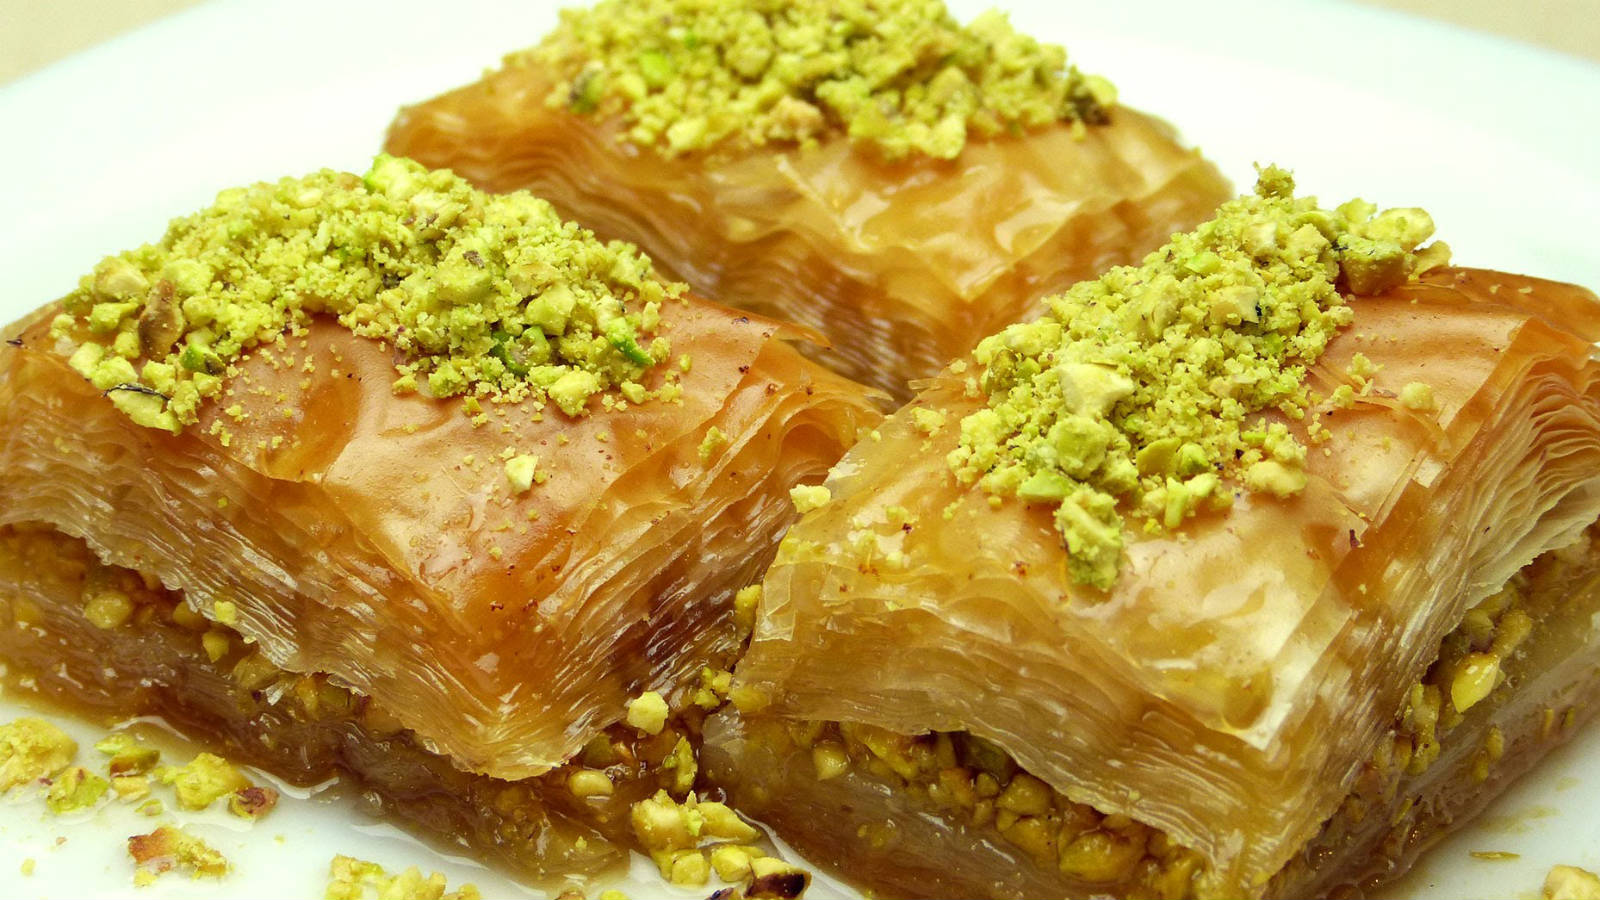 4. Baklava (Turkey)